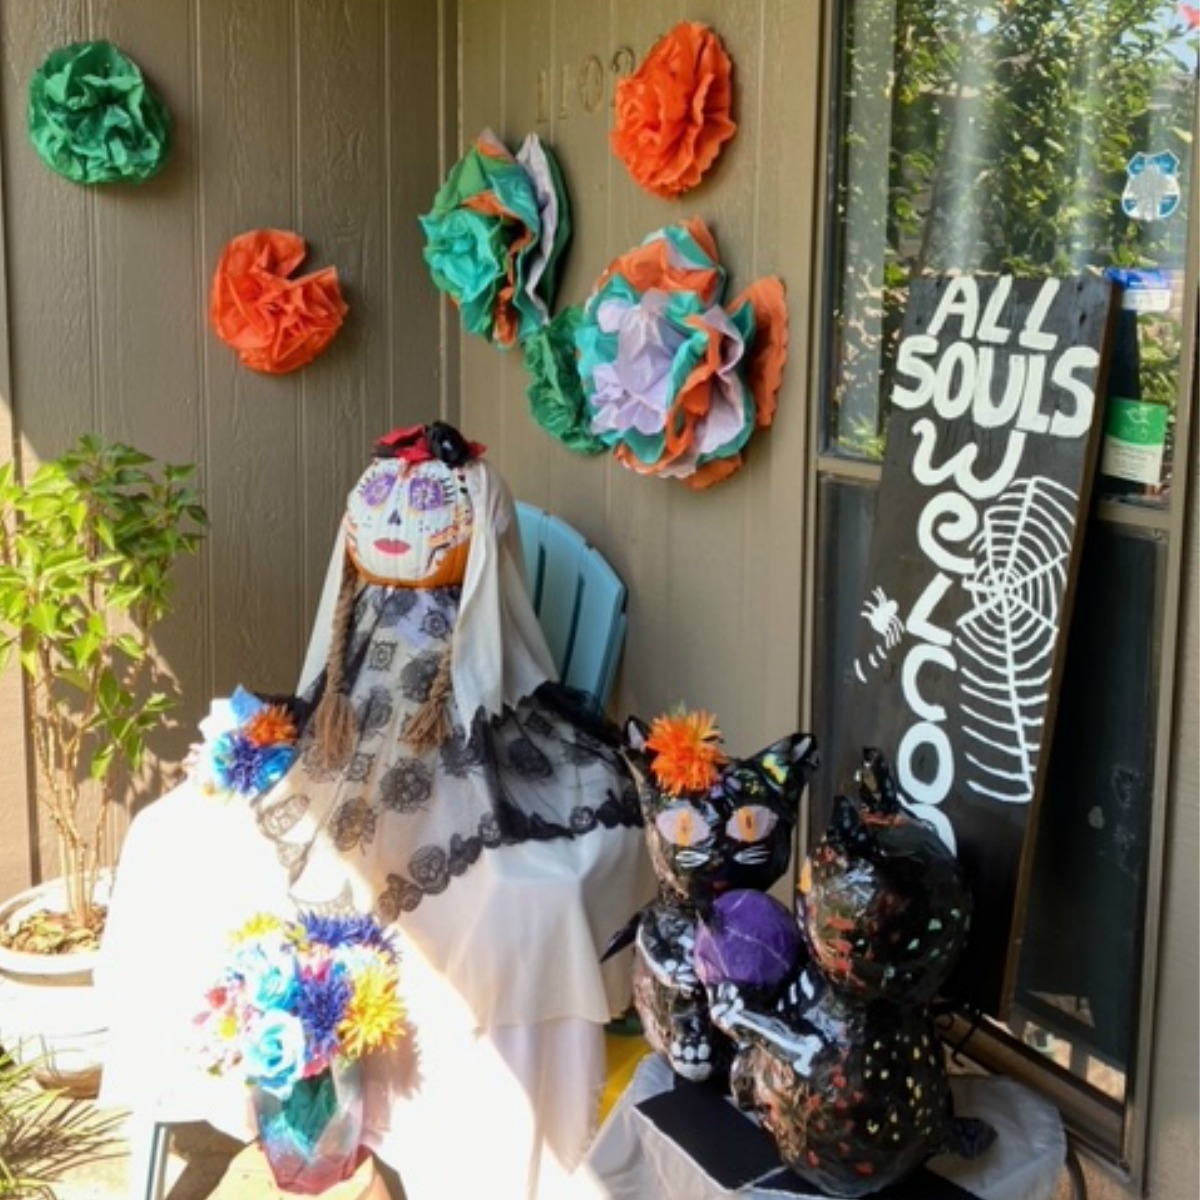 Porch display with homemade crafts